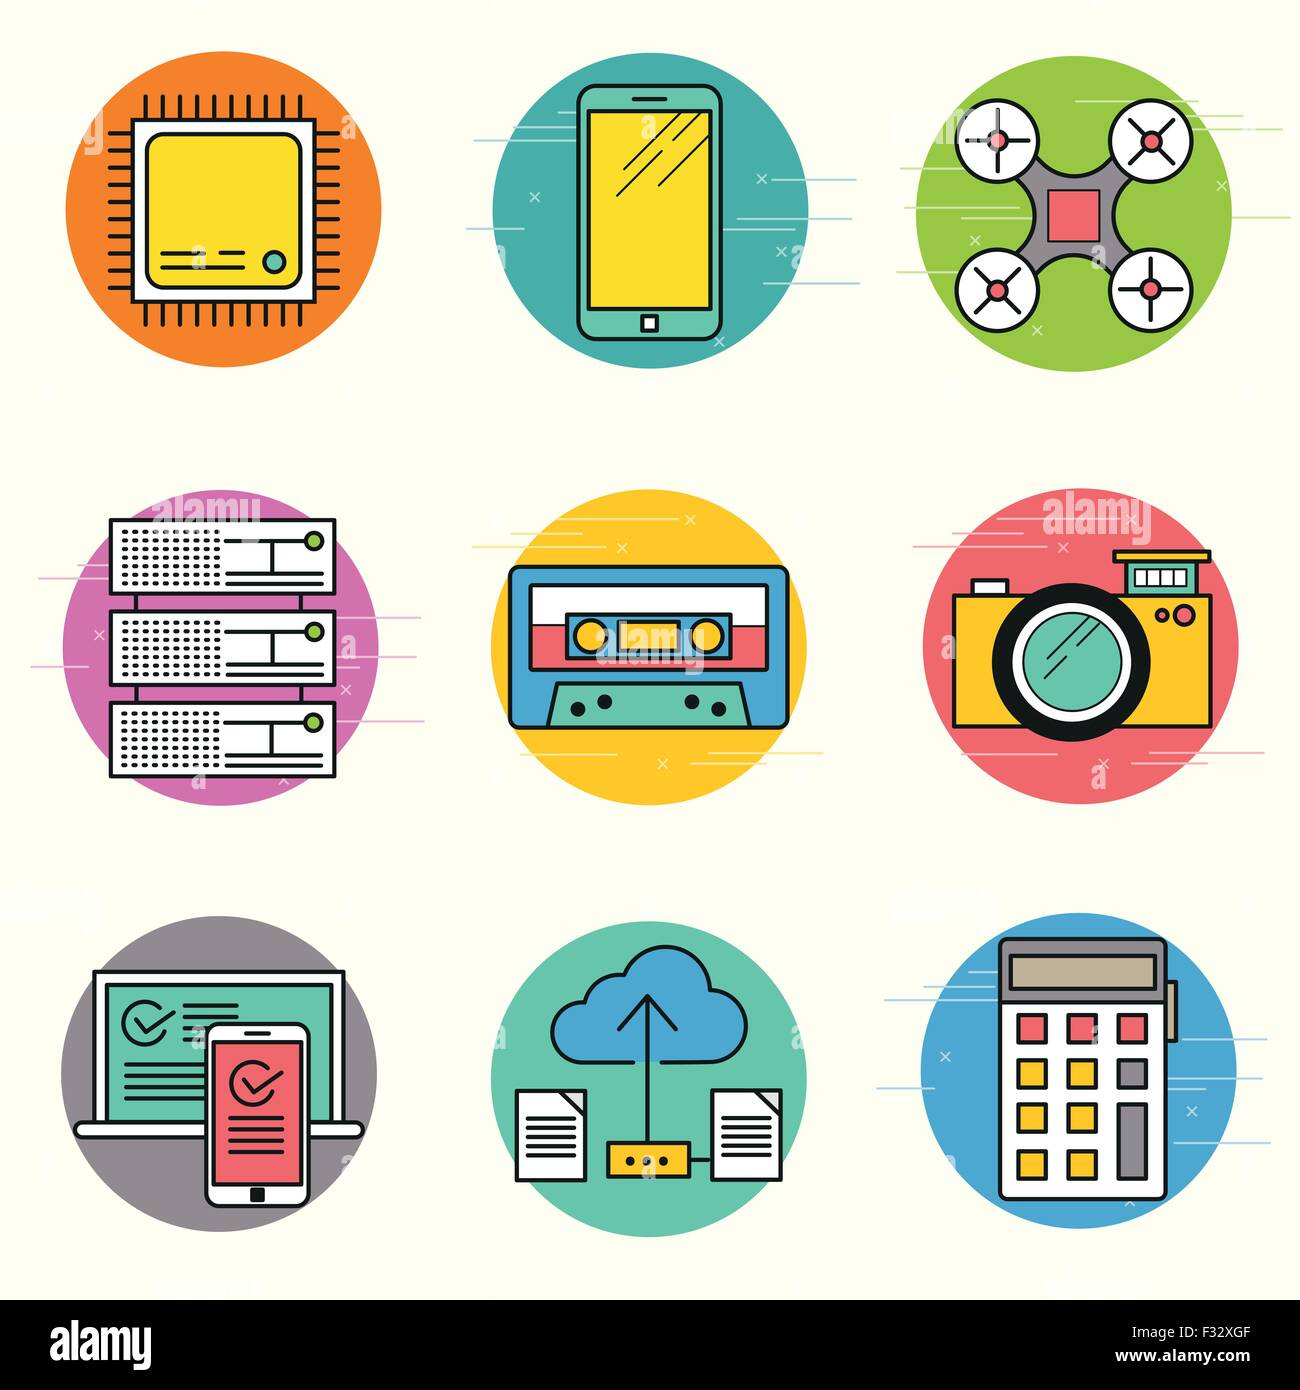 Technology Vector Icon Set. A collection of modern technology items including a CPU, drone, servers and mobile devices. - Stock Image